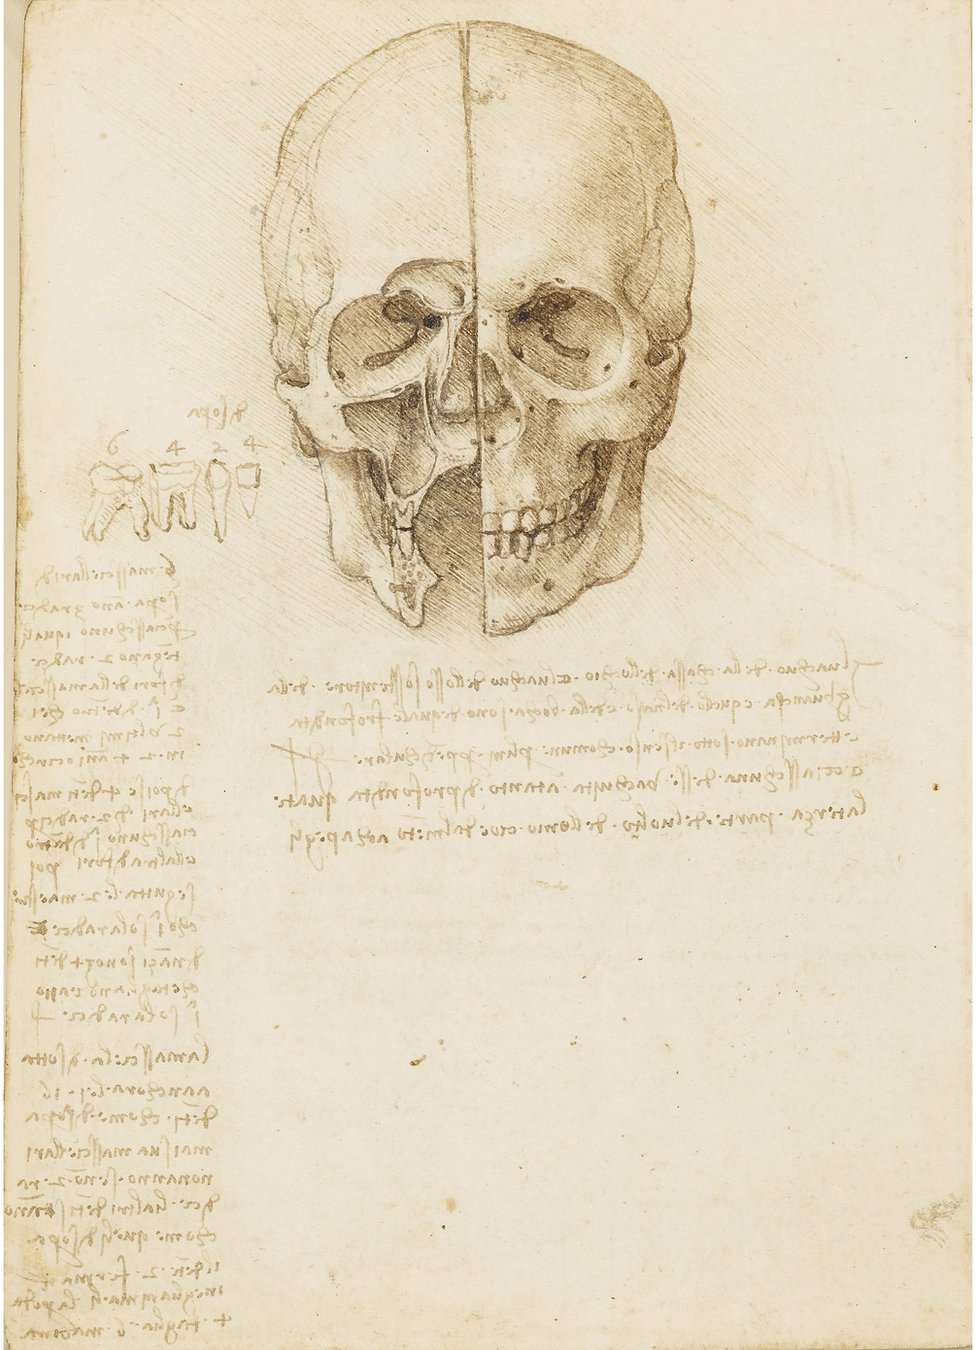 An anatomical drawing of a skull by Leonardo da Vinci